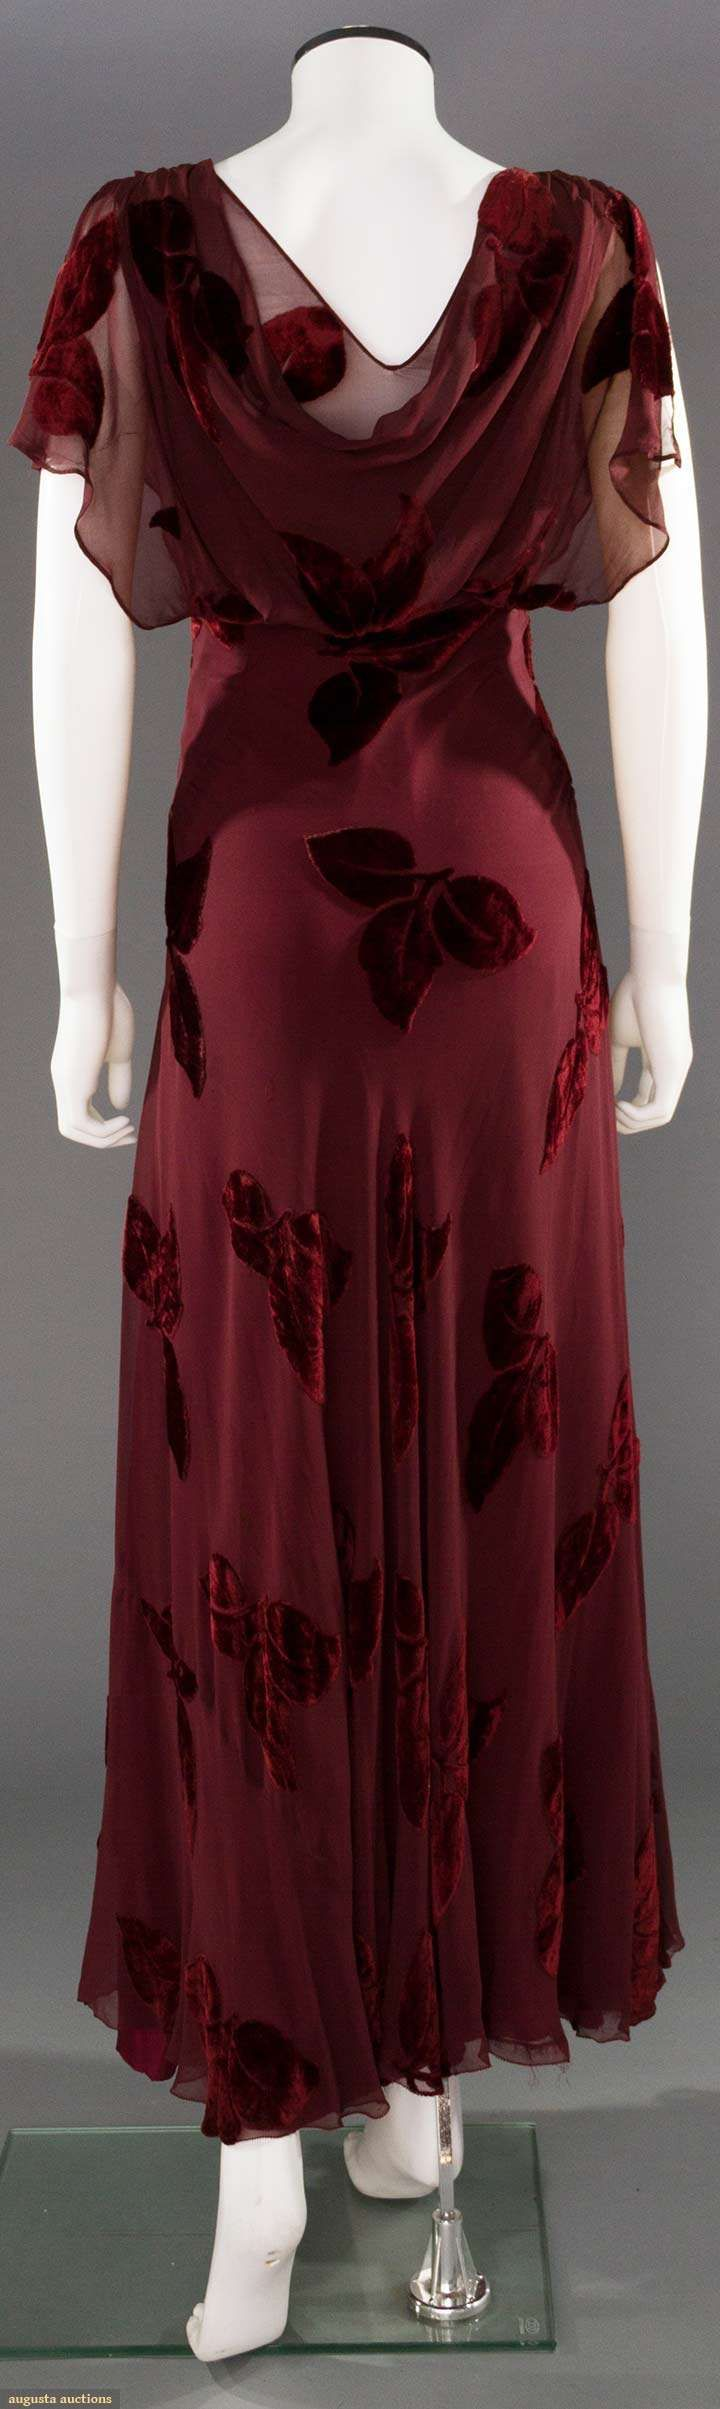 CUT VELVET EVENING GOWN, 1930s Cranberry leaves cut to chiffon, bias cut w/ matching silk slip